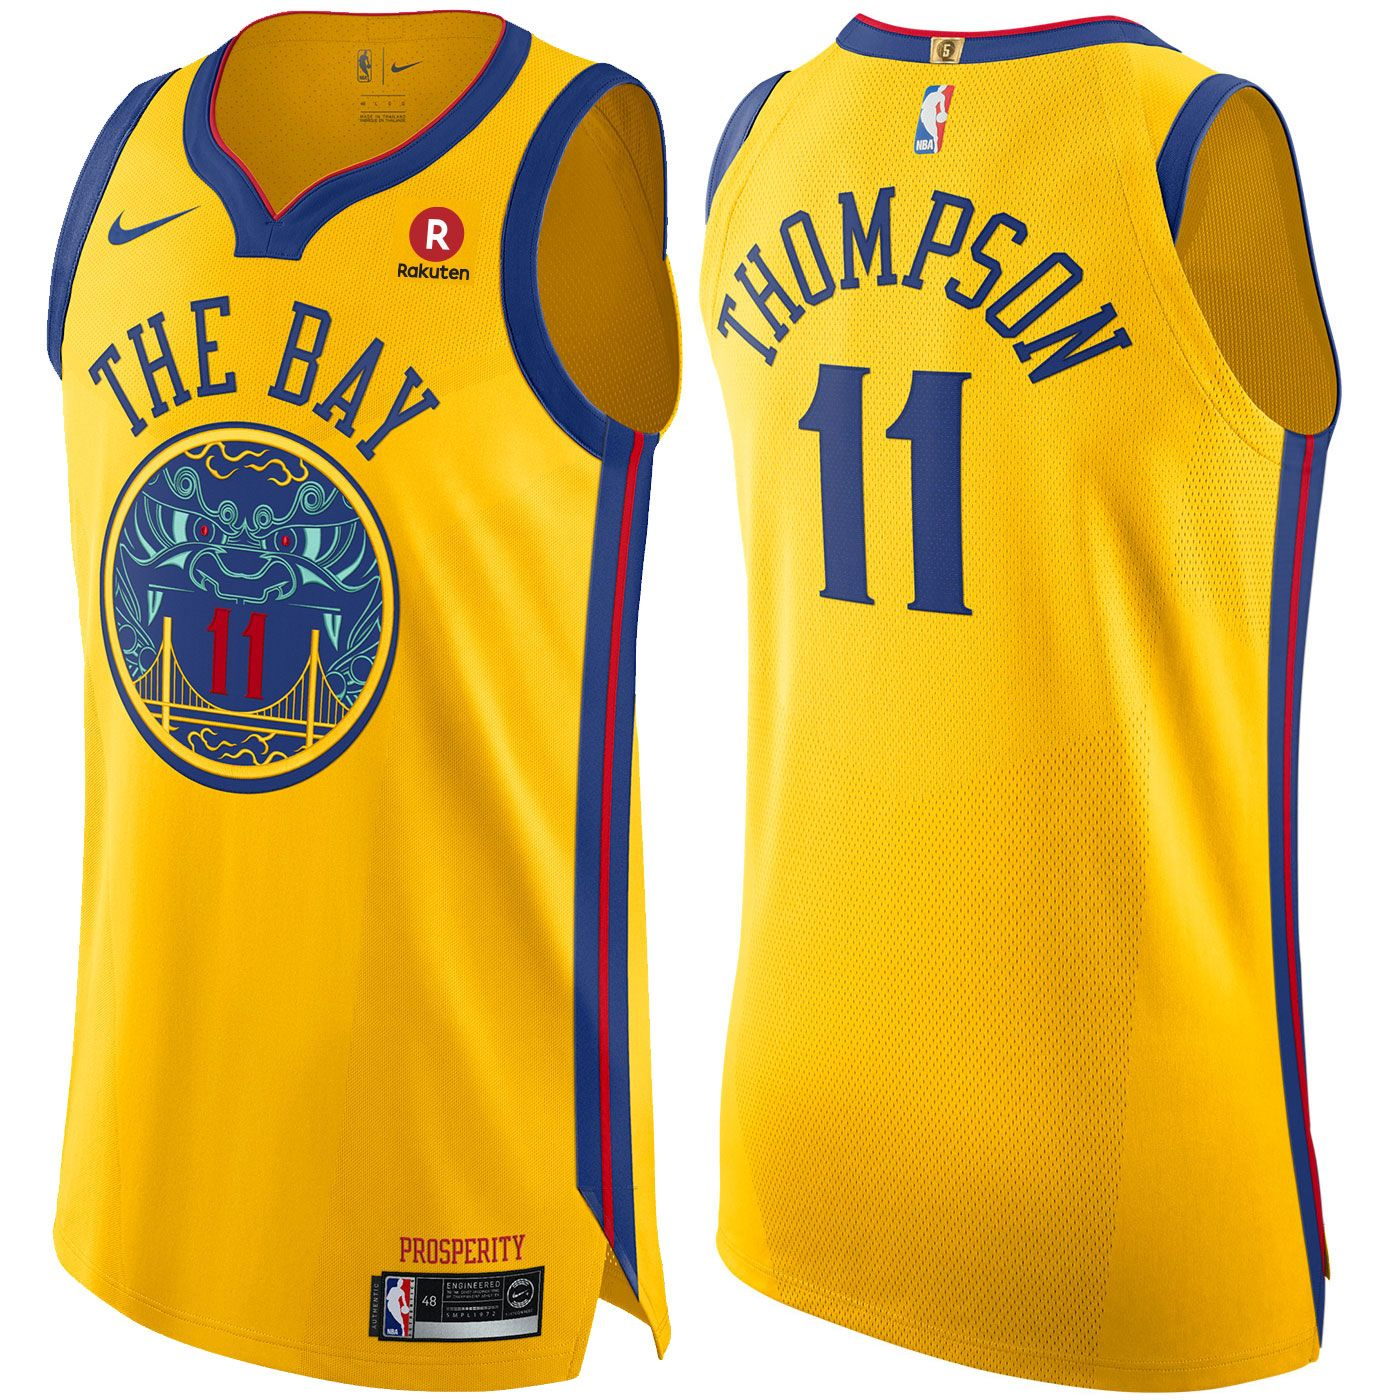 53f54904 Golden State Warriors Nike Men's Chinese Heritage Klay Thompson #11  Authentic On Court City Edition Jersey - Gold